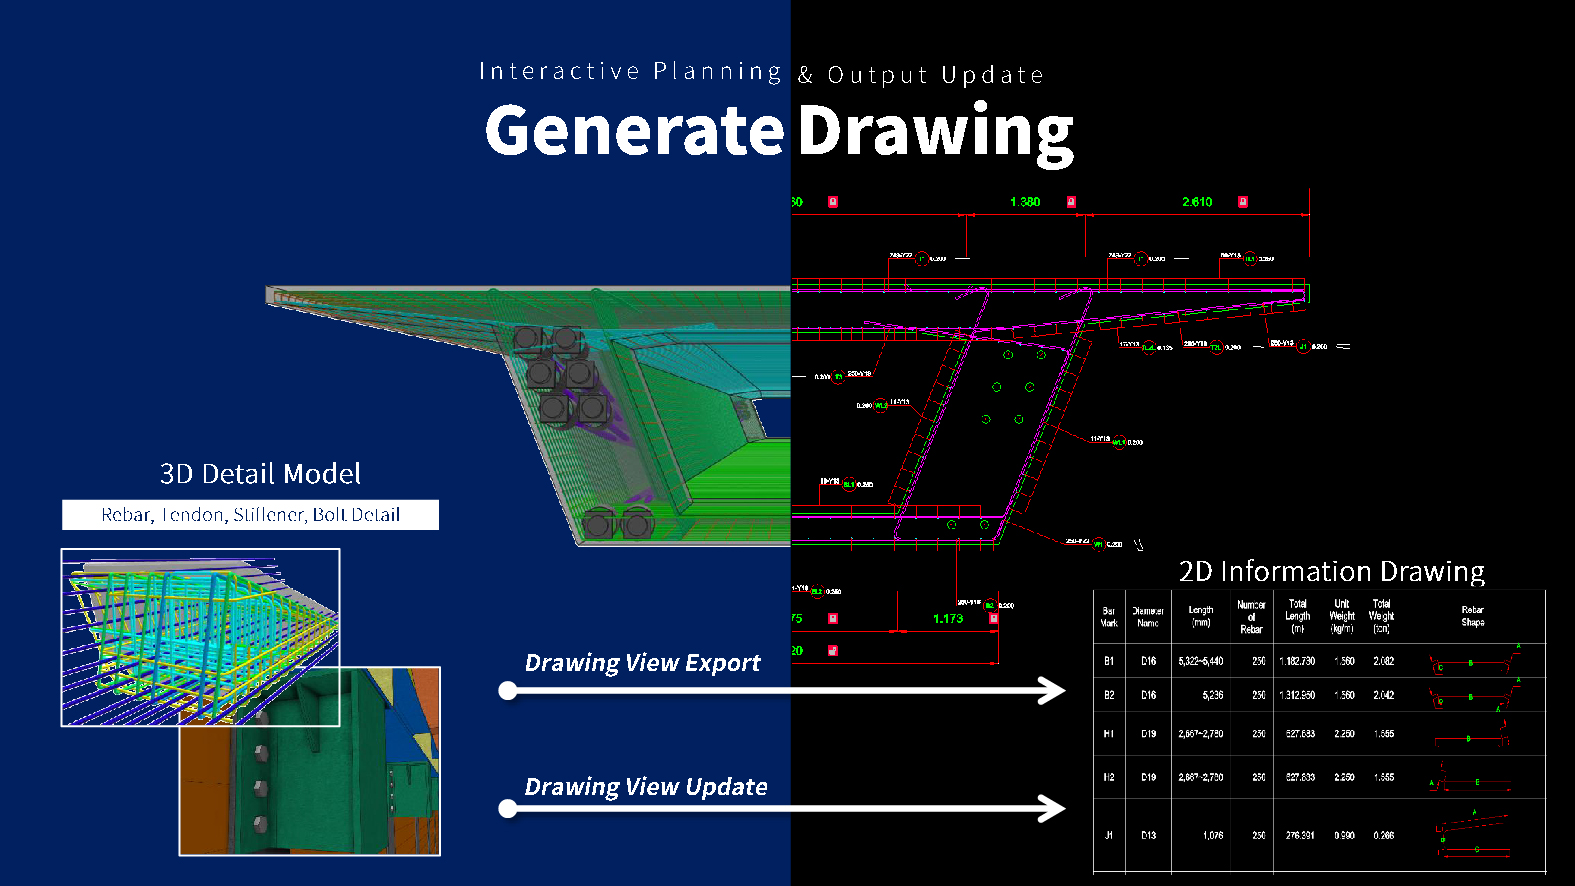 2D CAD Information Drawings